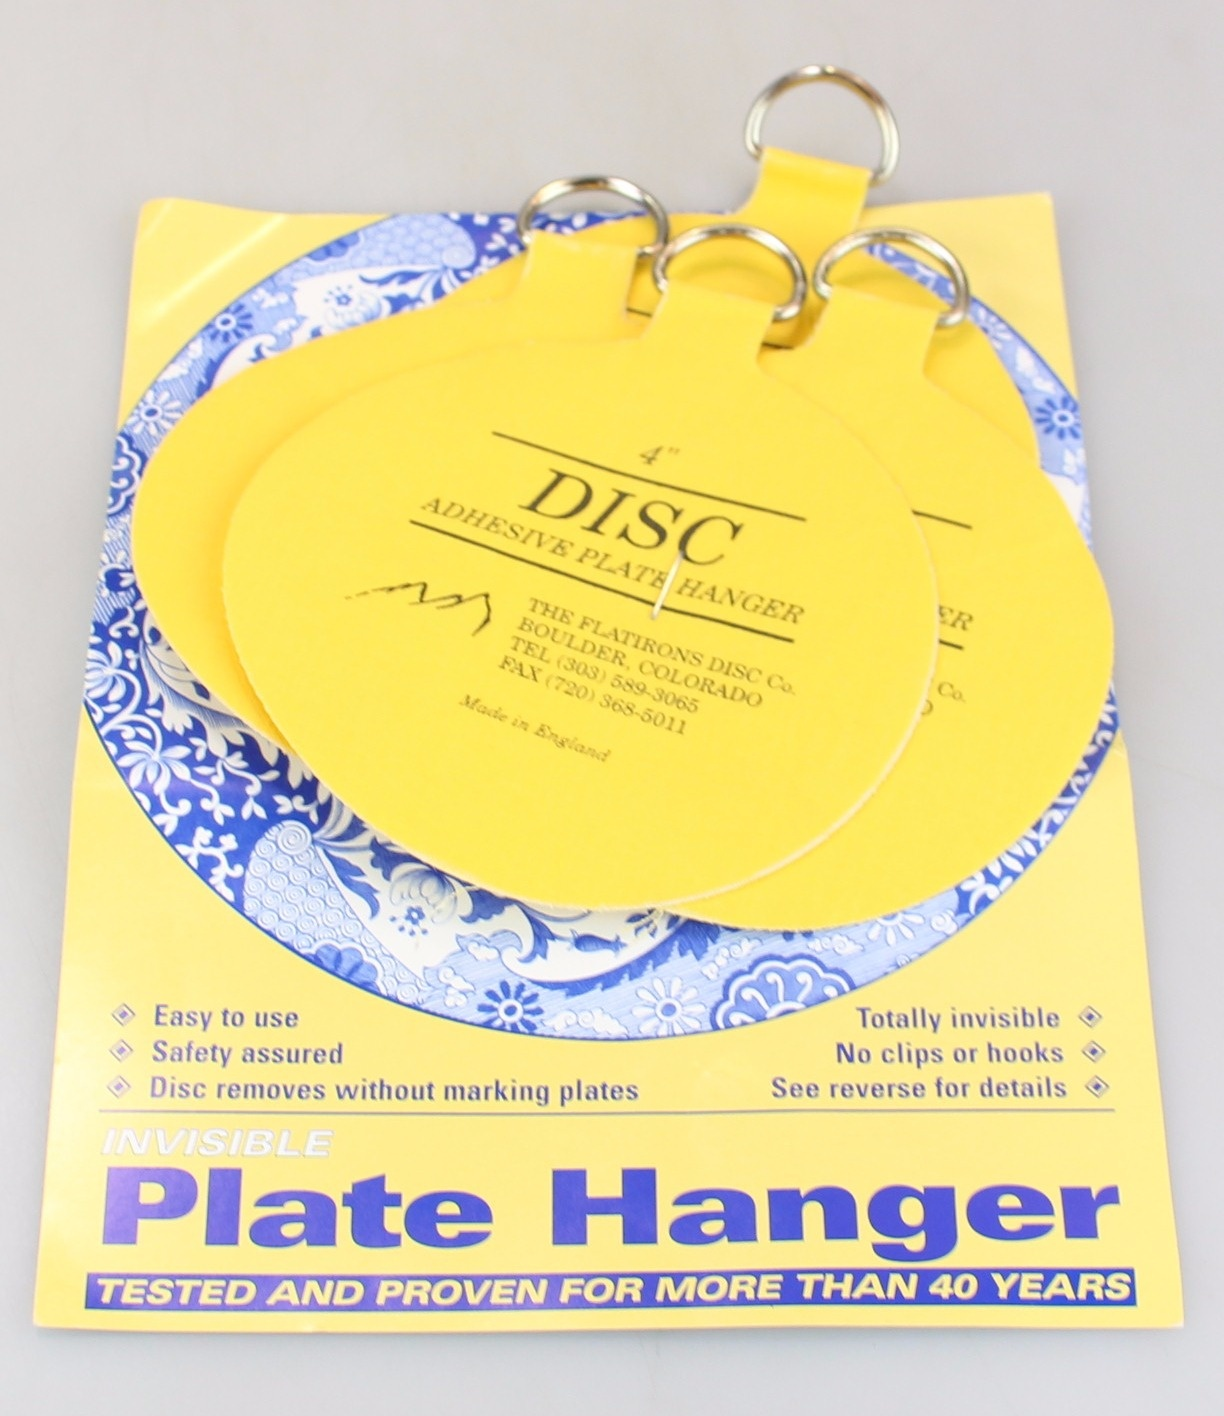 sc 1 st  Fishpond NZ & The Flatirons Disc Co. Invisible English Disc Adhesive Large Plate Hanger Set